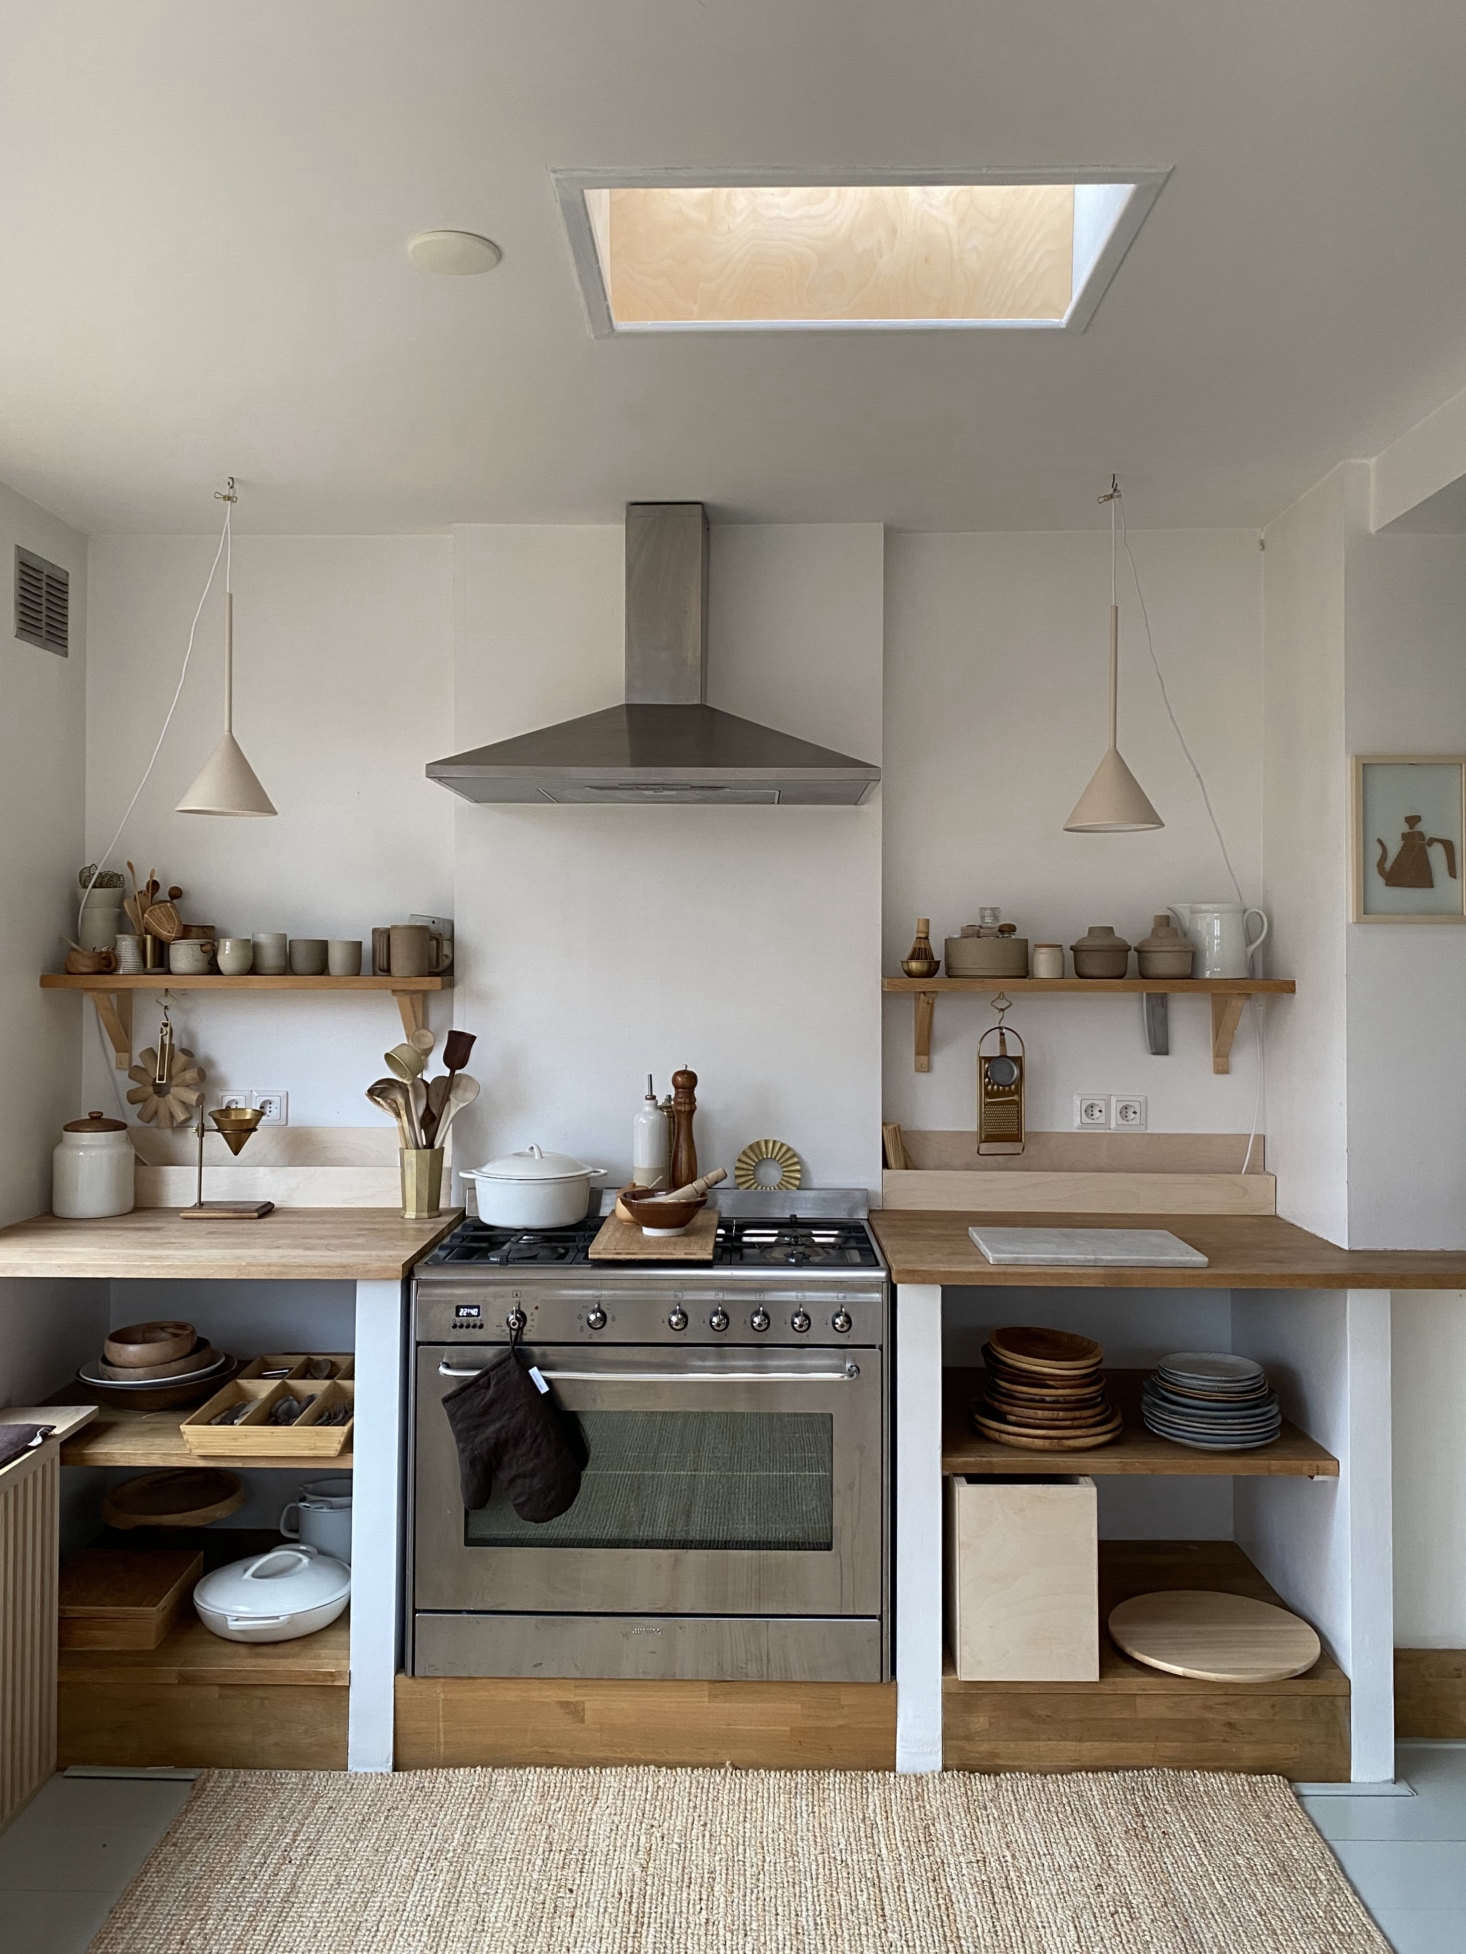 Open shelving in the kitchen (even their flatware is on a shelf and not in a drawer) means they have to be mindful of keeping clutter at bay. A sisal rug in the kitchen makes for an extra-cozy vibe.